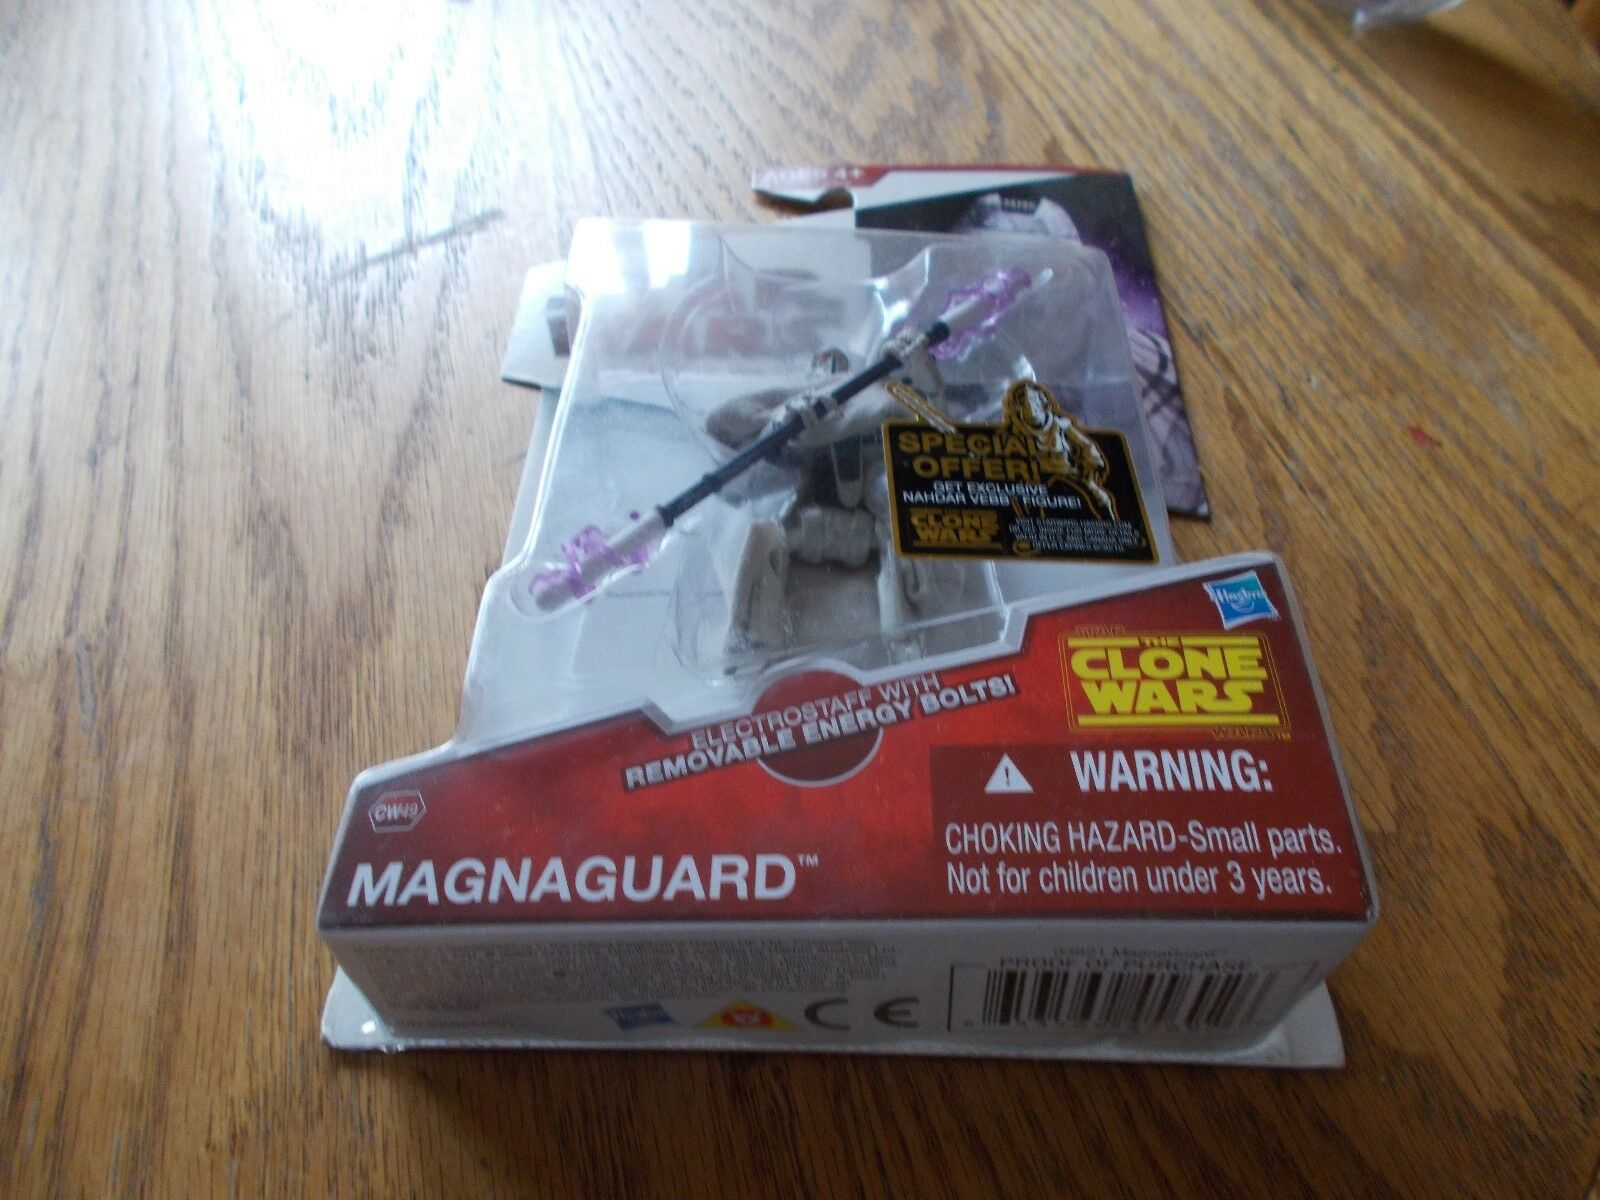 HASBRO-STAR HASBRO-STAR HASBRO-STAR WARS-THE CLONE WARS - MAGNAGUARD BRAND NEW SEALED f7fd30